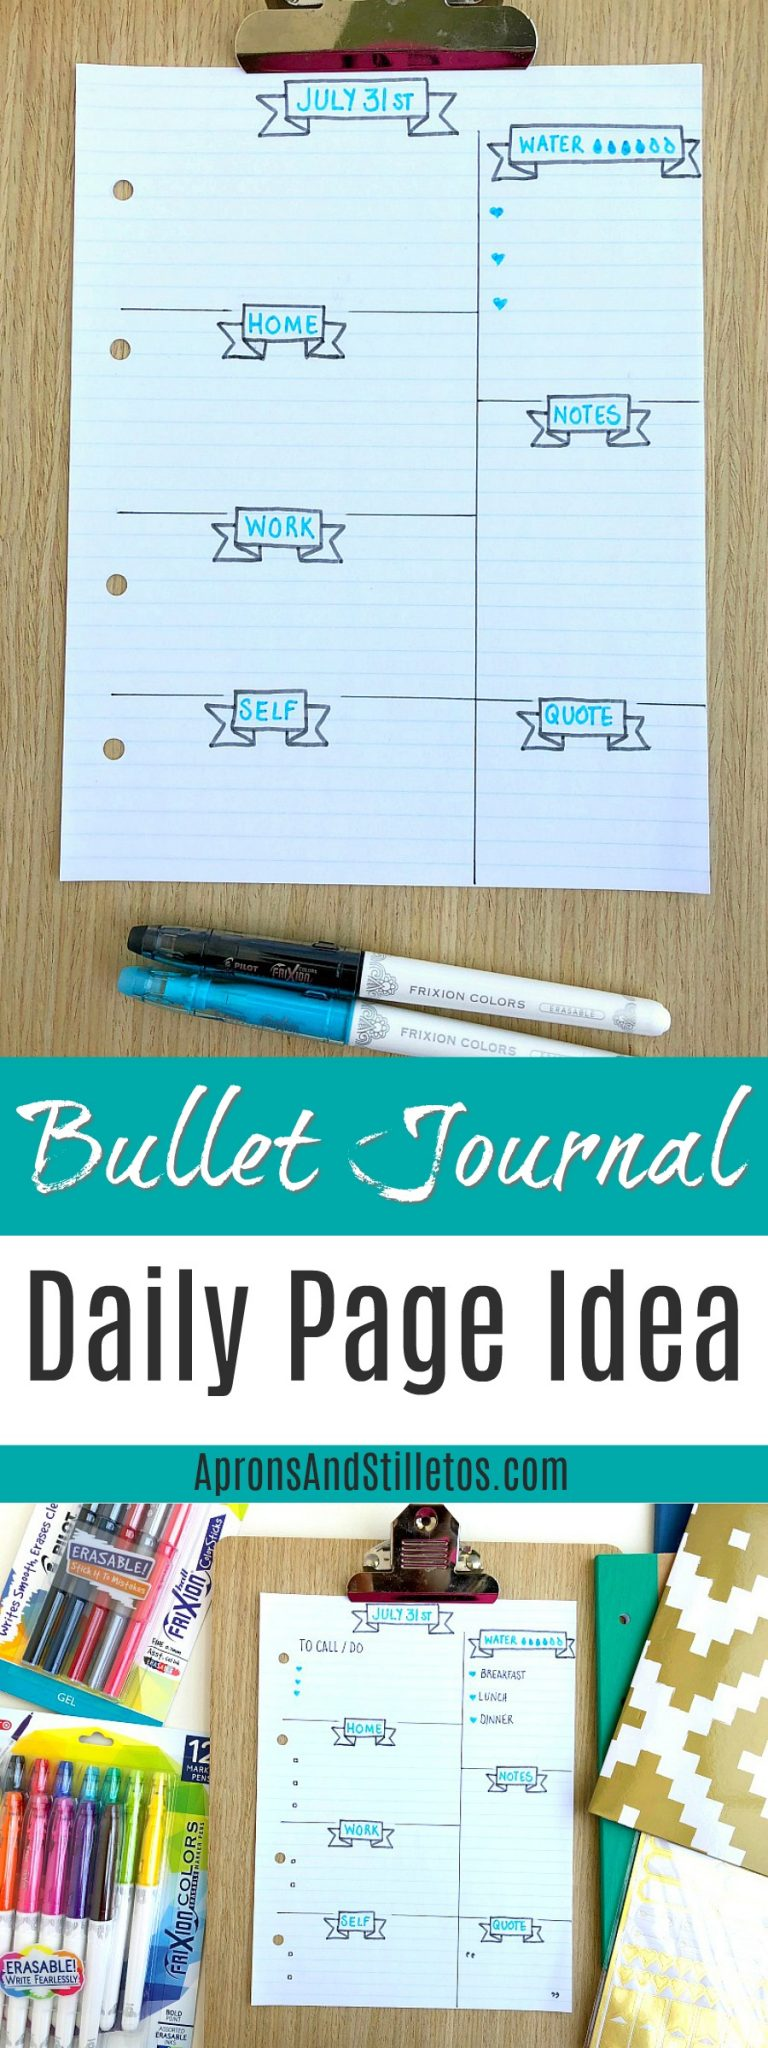 BULLET JOURNAL DAILY PAGE IDEA